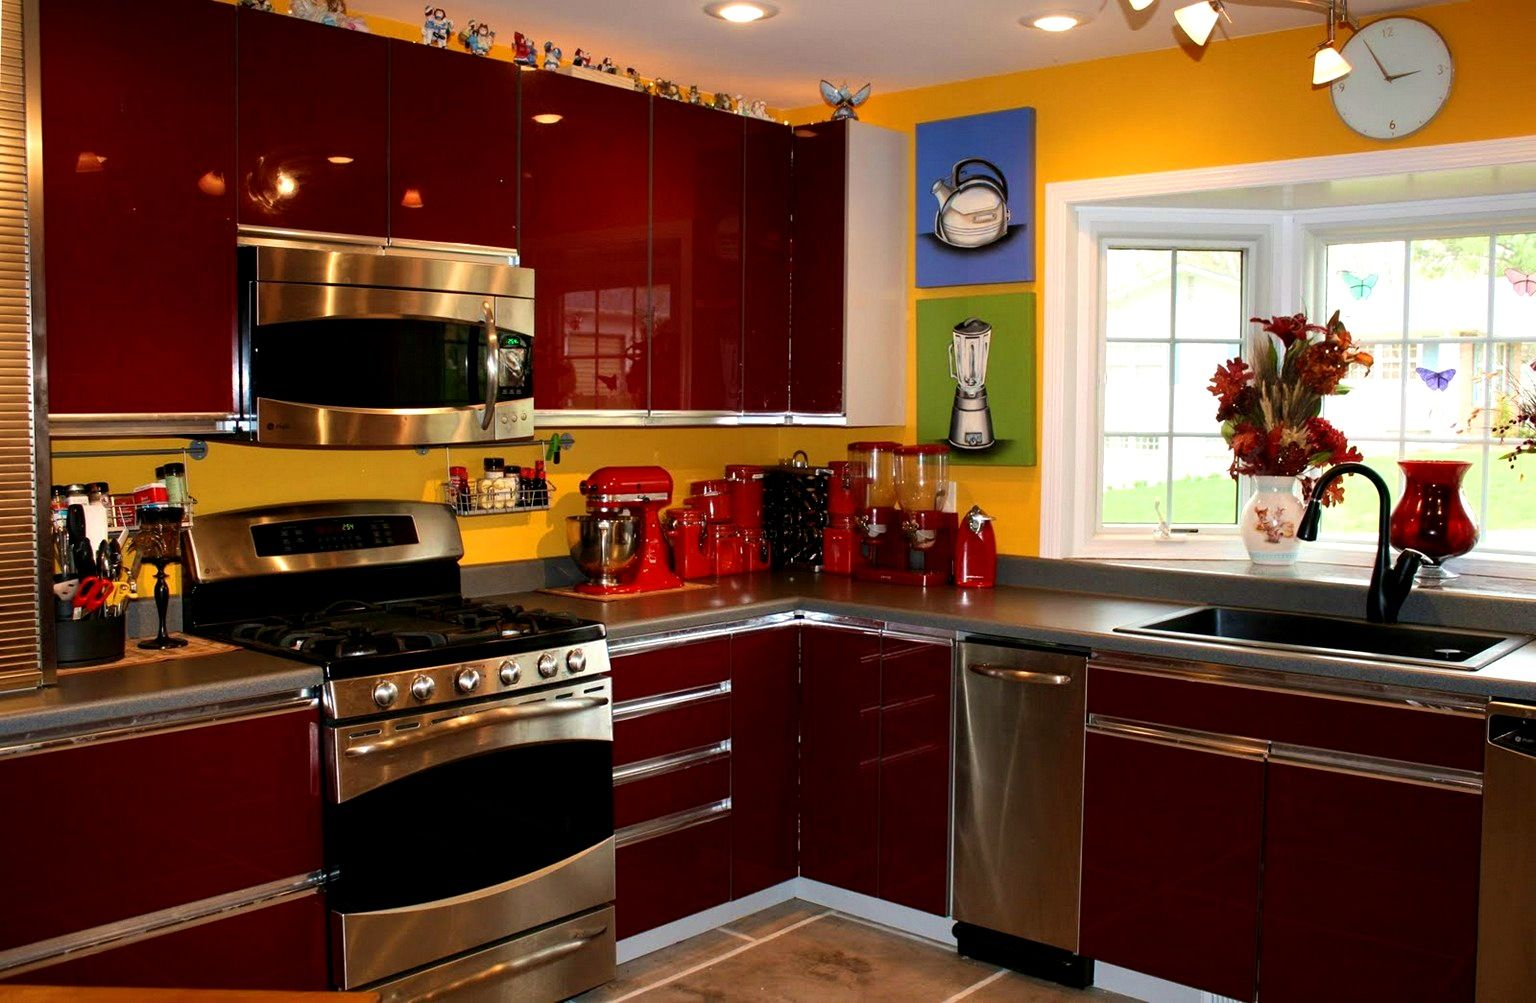 Accessories Picturesque Images About Red Black And White Kitchen Grey Walls Yellow Decorating Wallpape Kitchen Decor Sets Black Kitchen Decor Red Kitchen Walls